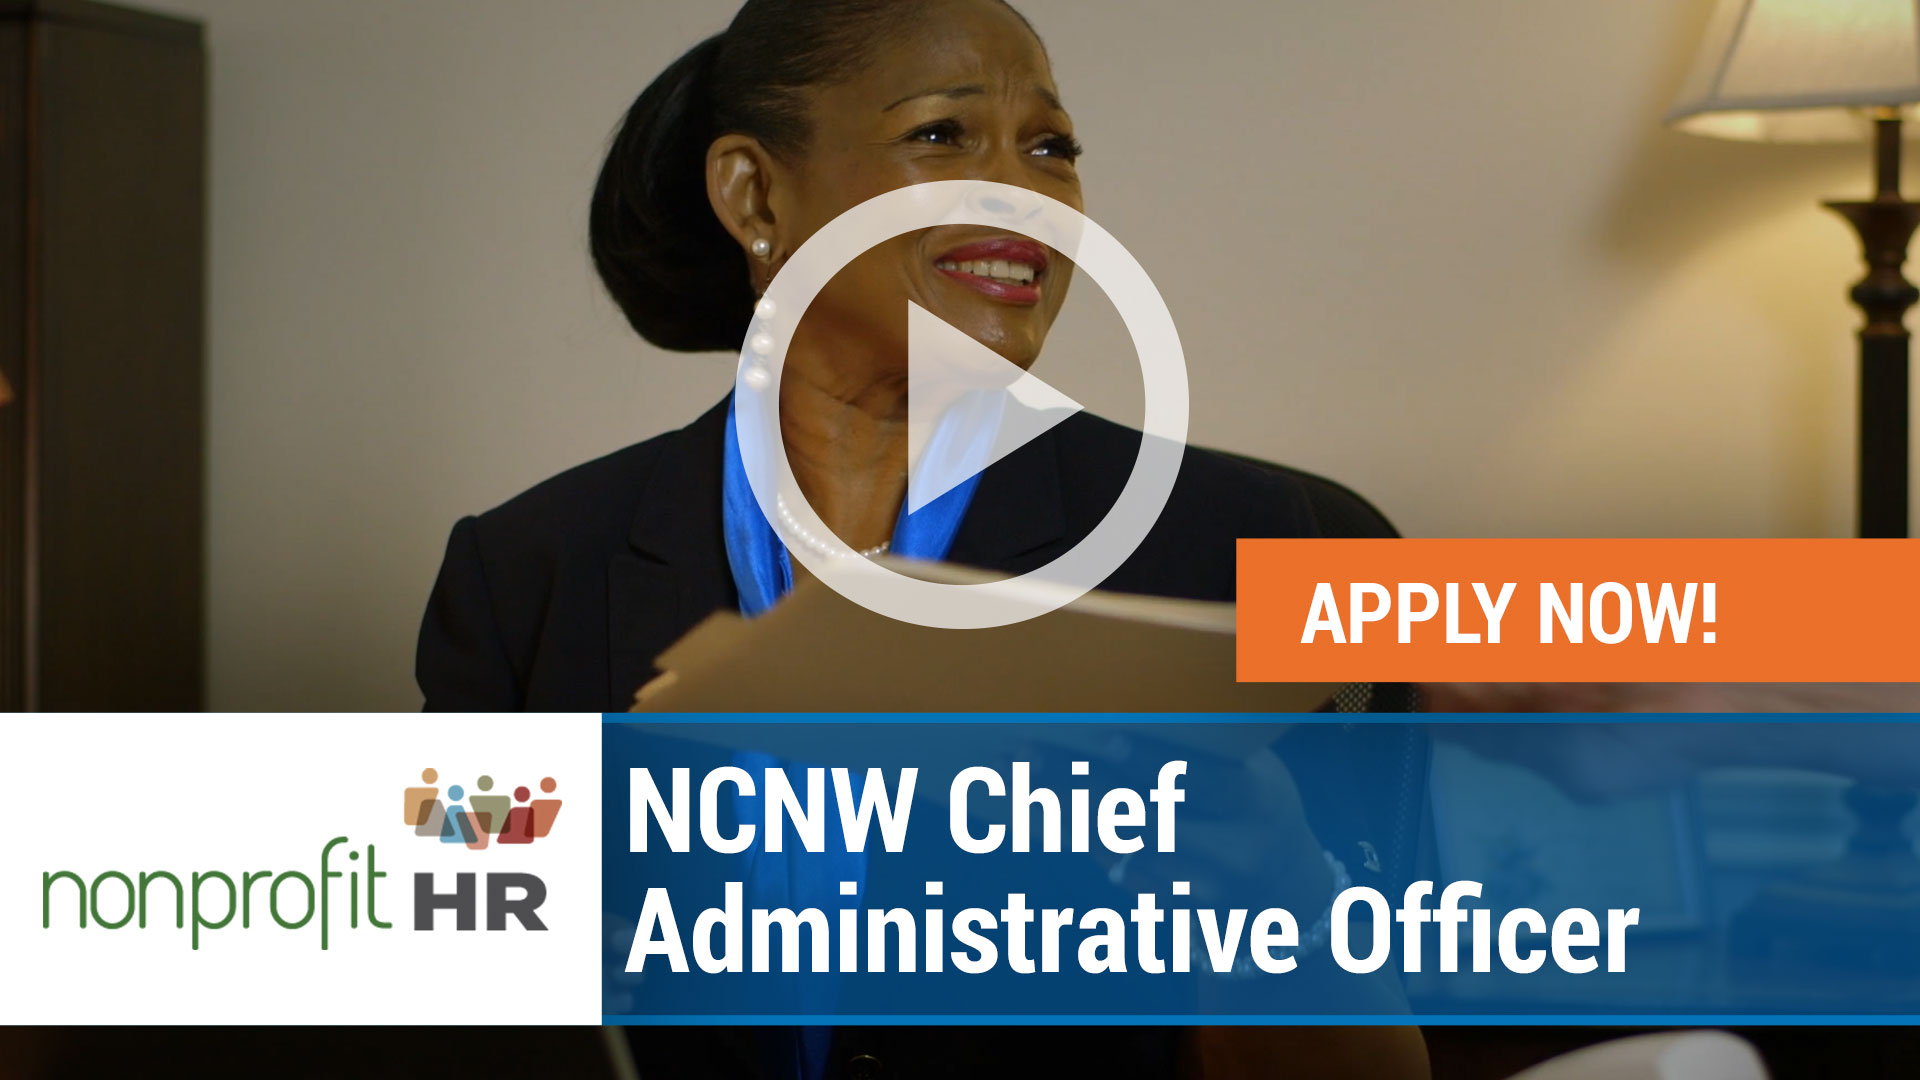 Watch our careers video for available job opening NCNW Chief Administrative Officer in Varies, Varies.  USA